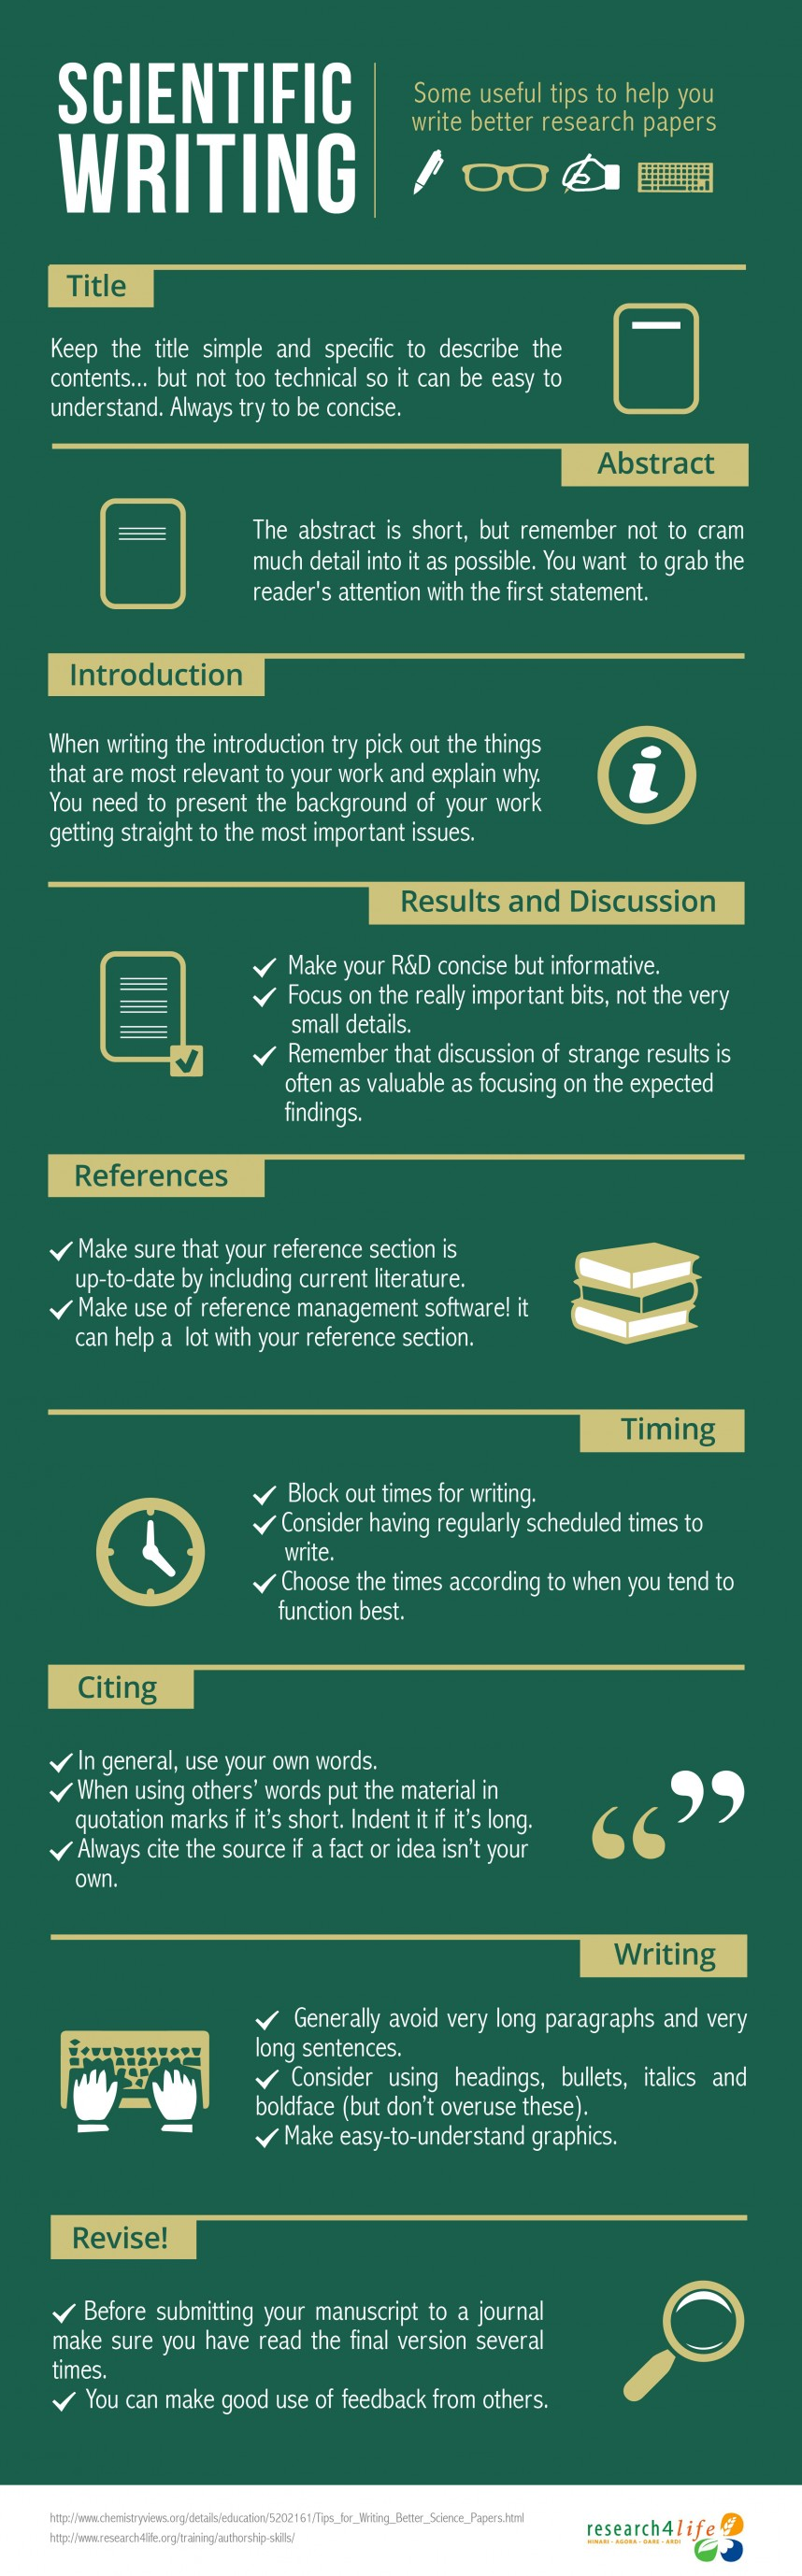 008 Fast Way To Write Research Paper Scientific Writing Dreaded A How Outline Pdf Thesis